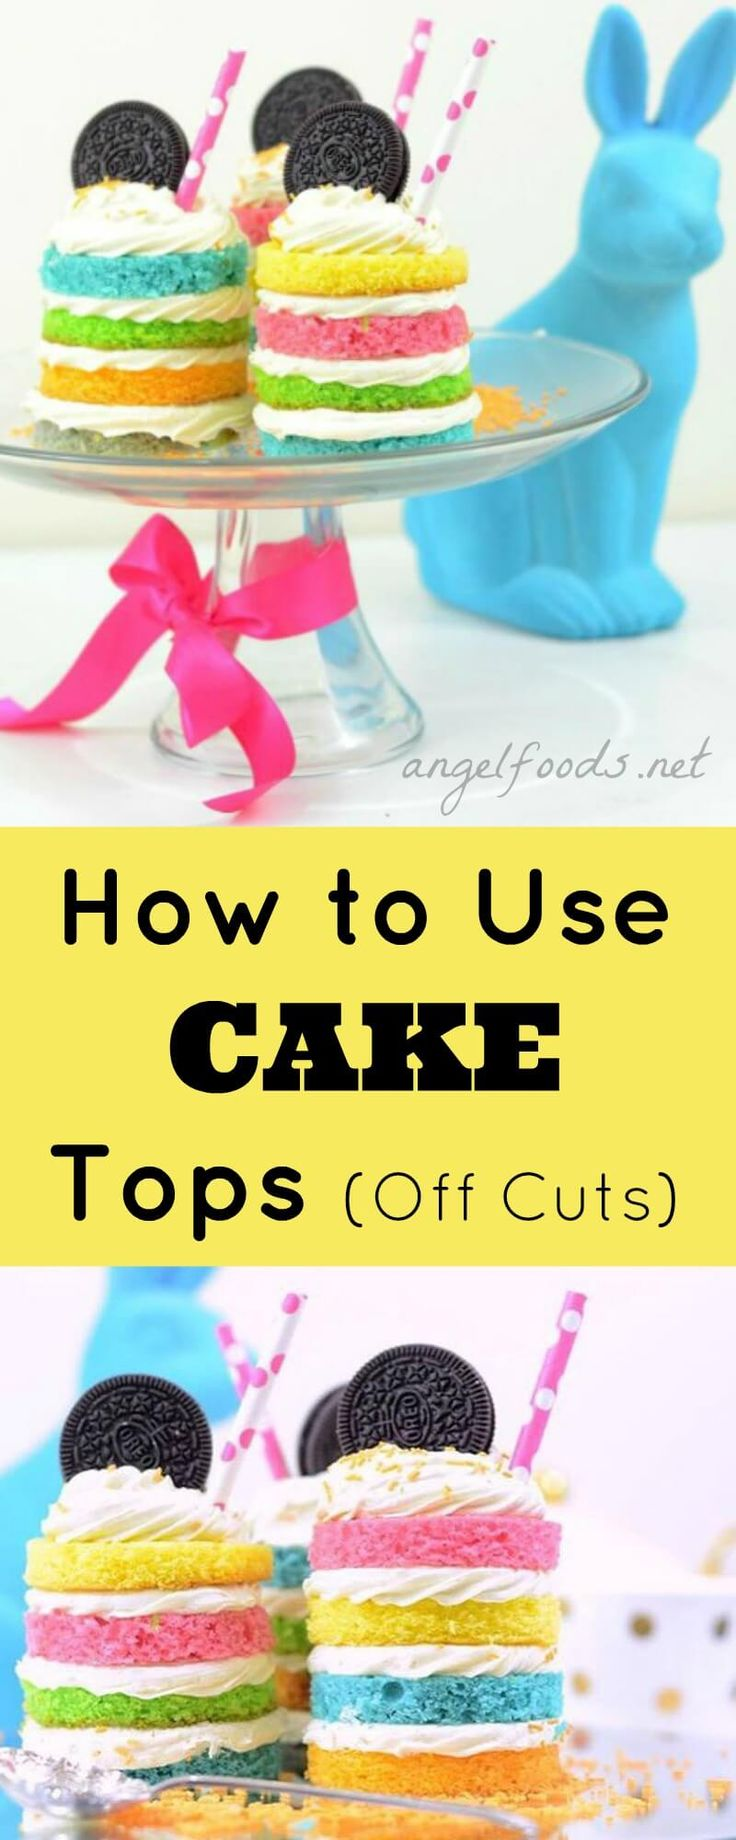 How to Use Cake Top Cut Off's | Rainbow layer mini cakes | Using your cake cut offs (or off cuts) and turn it into something you can sell, with mini rainbow layer cakes! If you are sick of wasting your cake that you cut off, throwing food away always makes you cringe and try to avoid throwing as we hate so much cake being wasted!